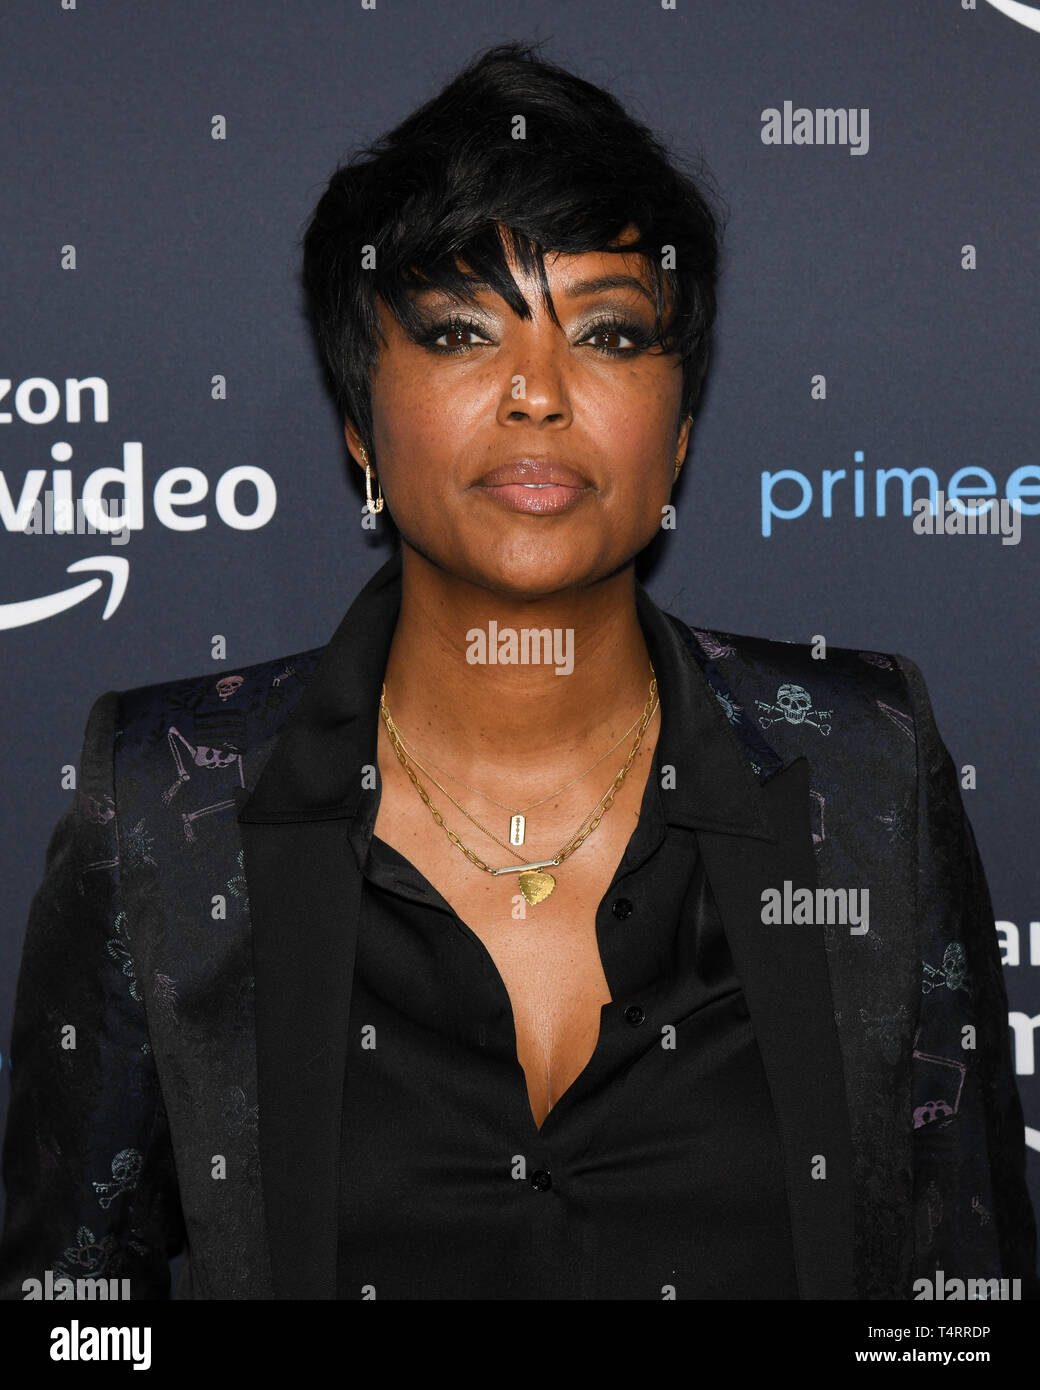 April 17, 2019 - Hollywood, California, USA - Actress AISHA TYLER attends  at the For Your Consideration Screening of Amazon Studios' 'Good Omens' at The Hollywood Athletic Club in Los Angeles, California. (Credit Image: © Billy Bennight/ZUMA Wire) - Stock Image